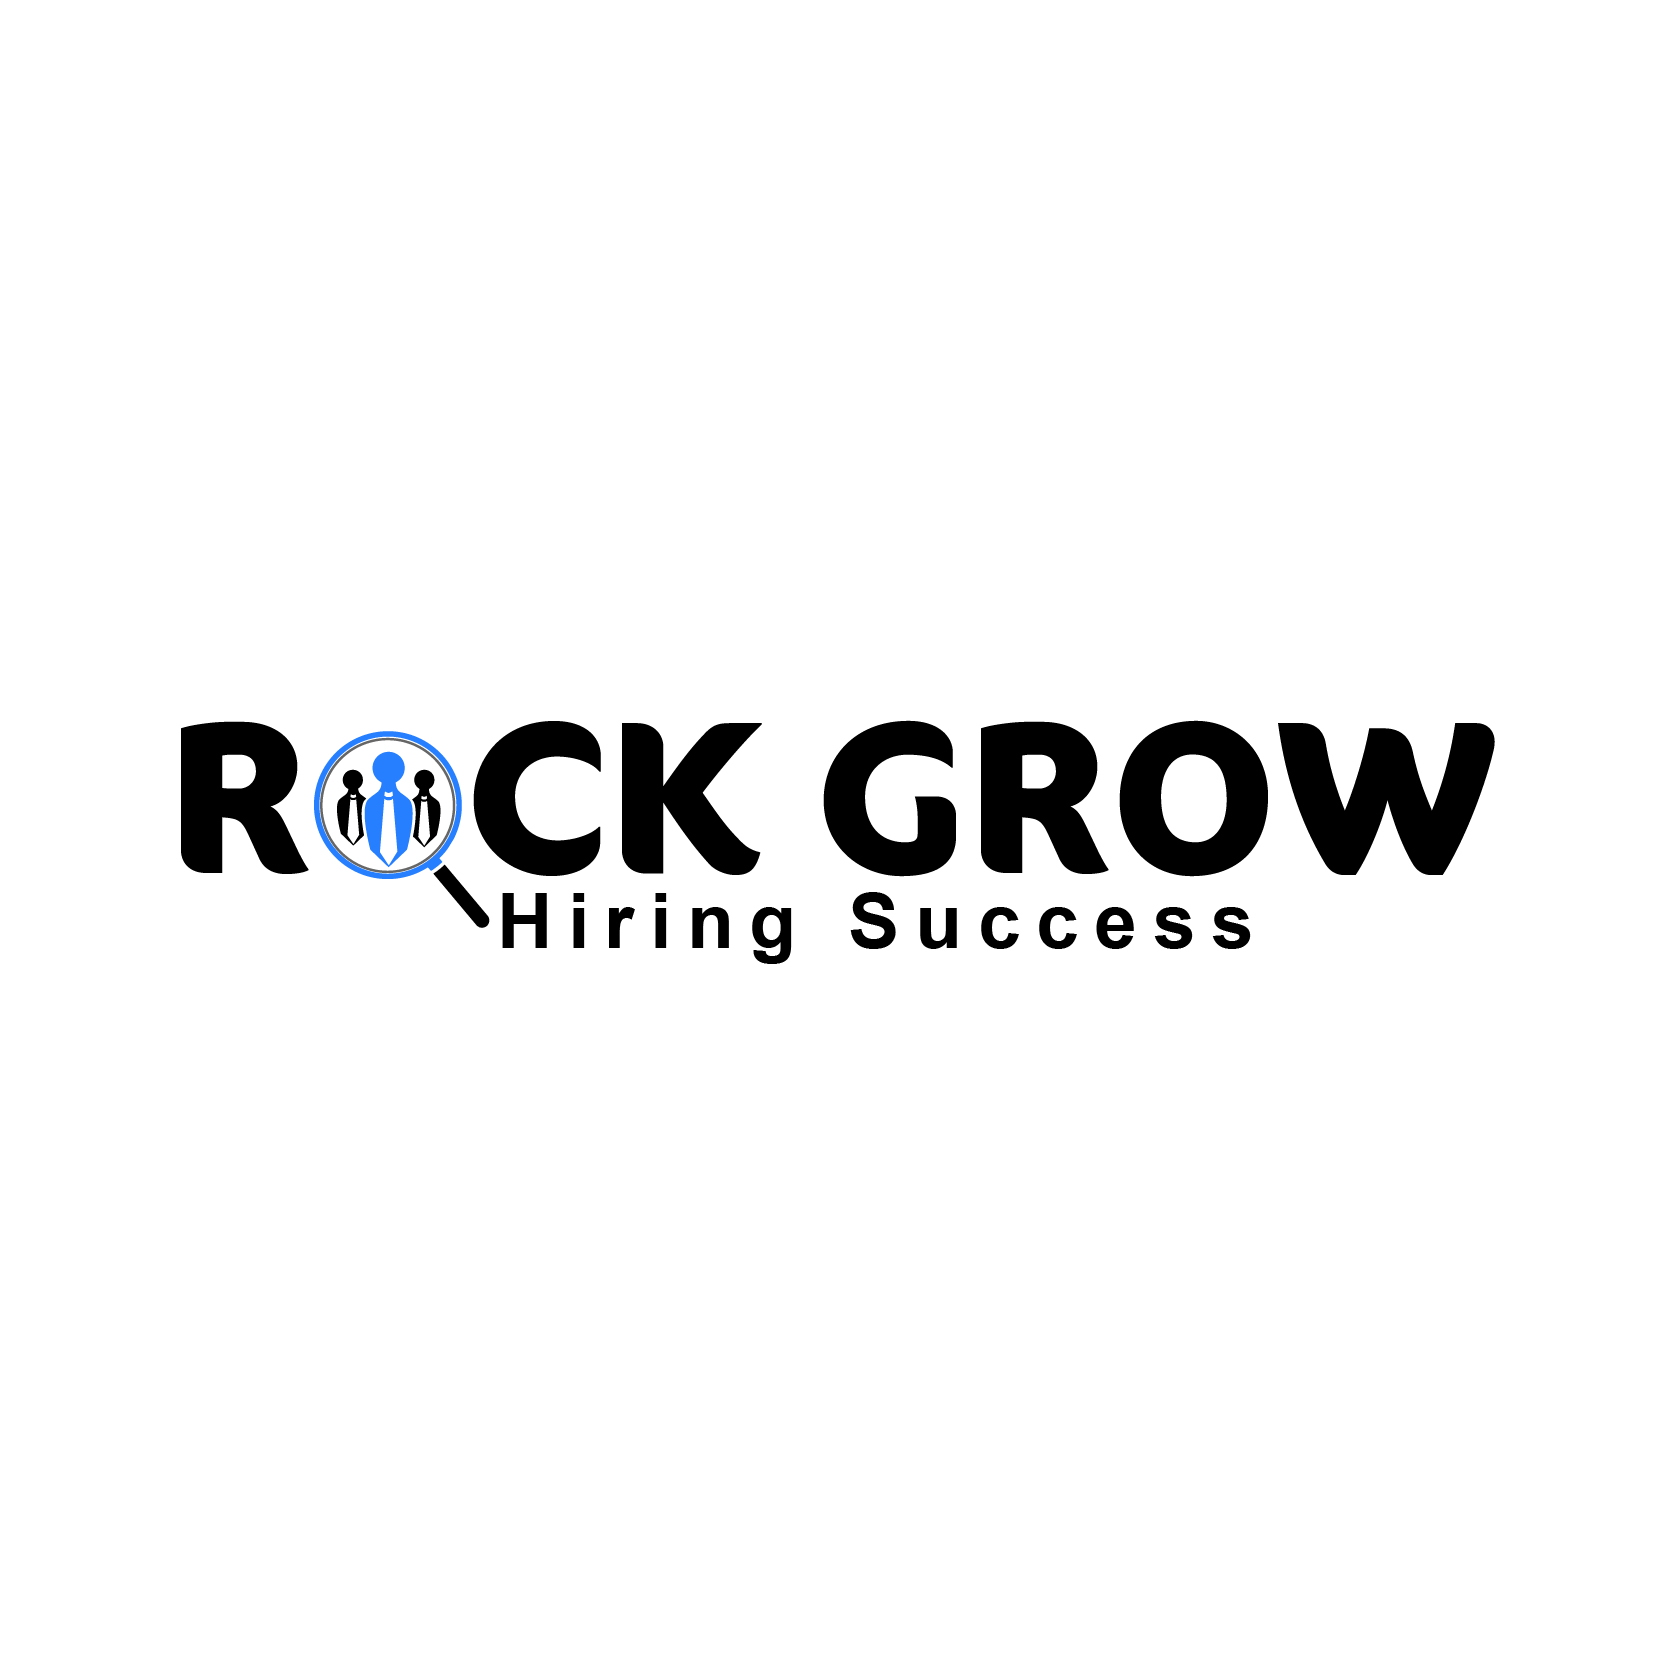 Rock Grow Hiring Success